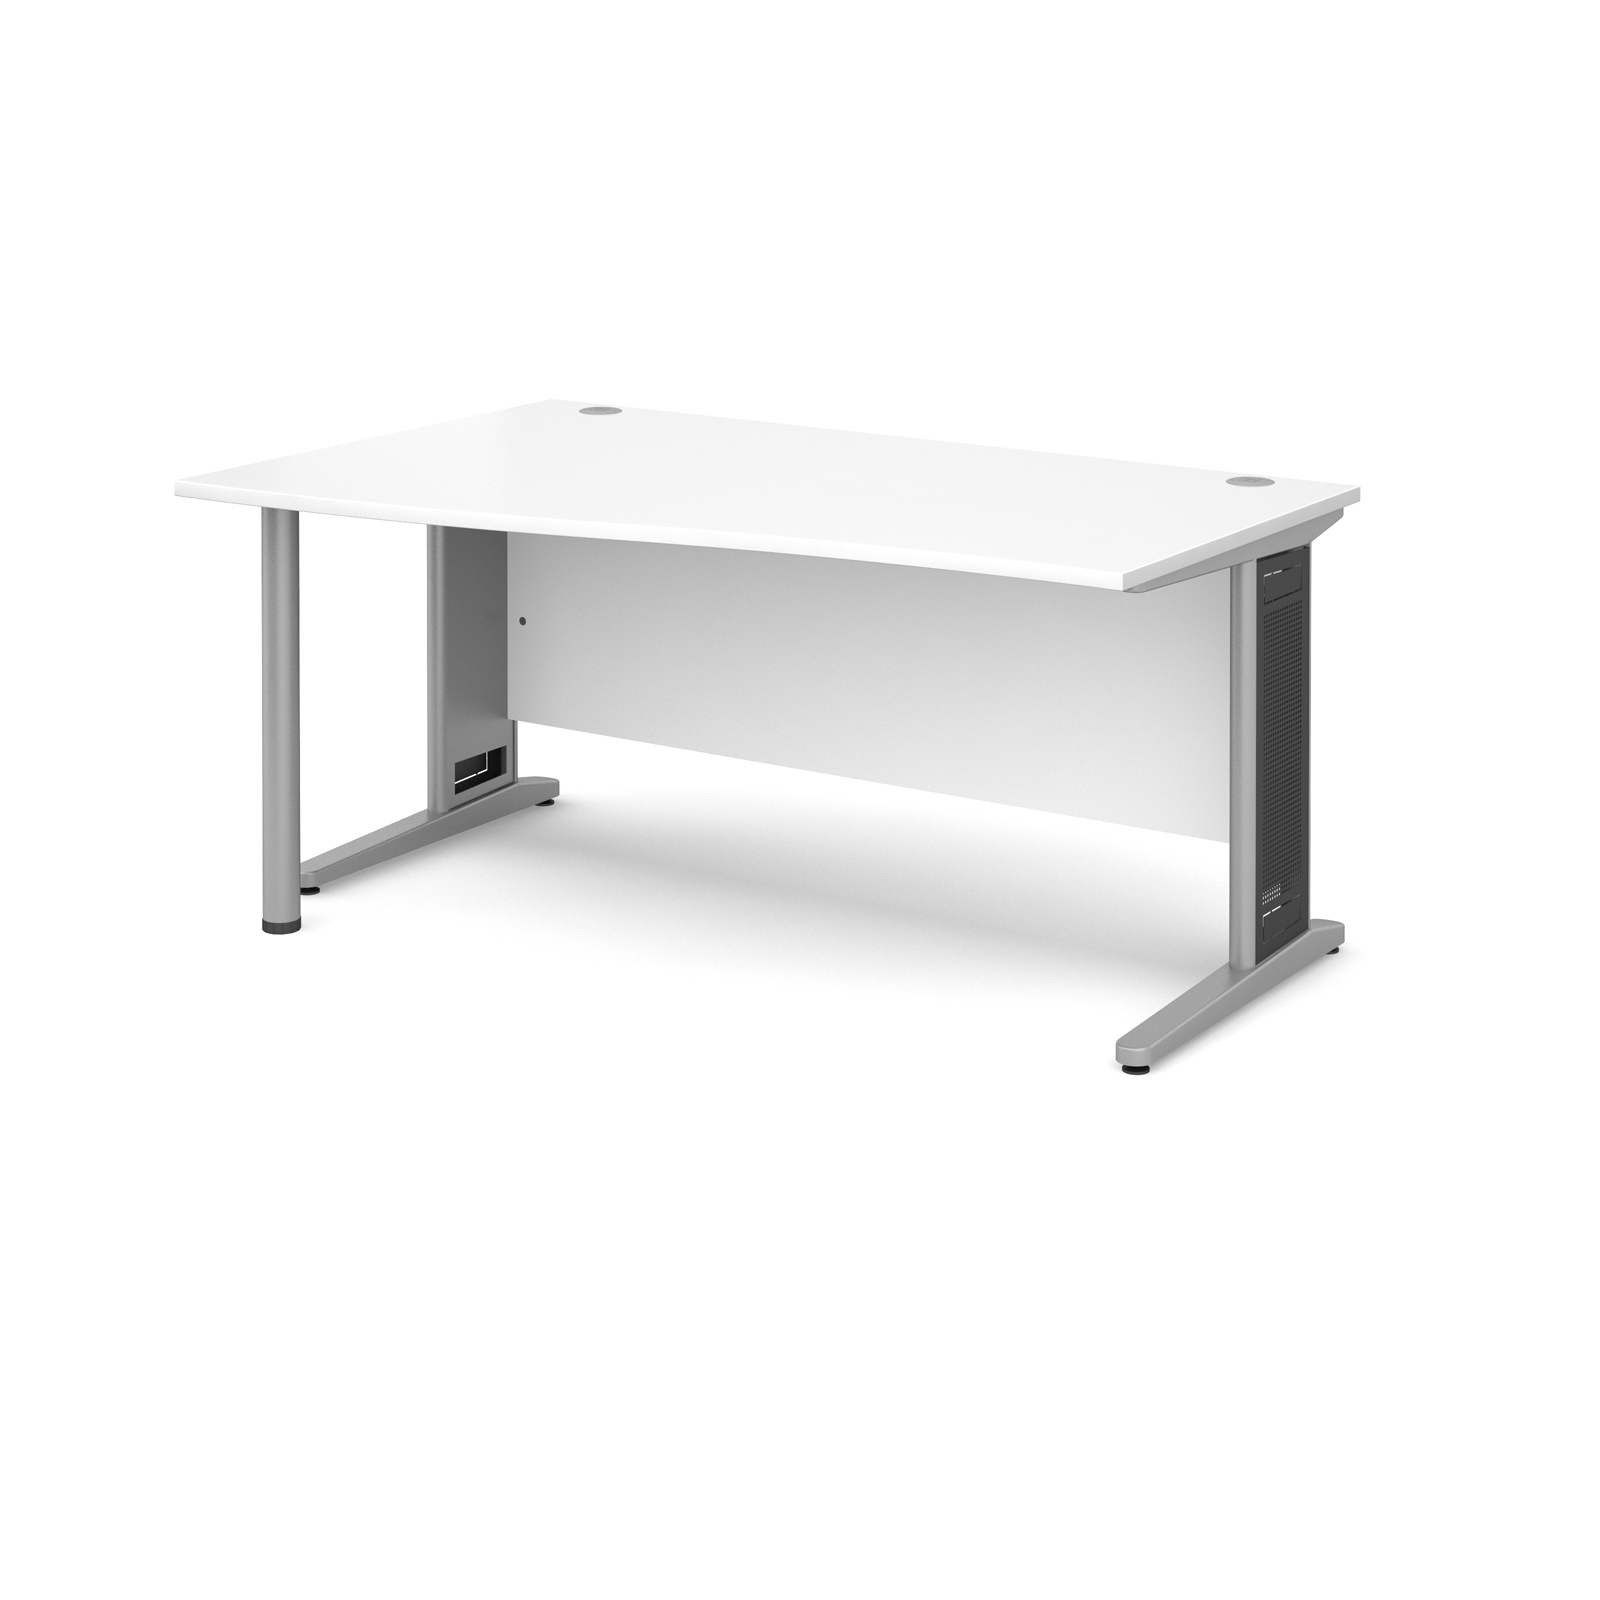 Largo left hand wave desk 1600mm - silver cantilever frame with removable grill, white top